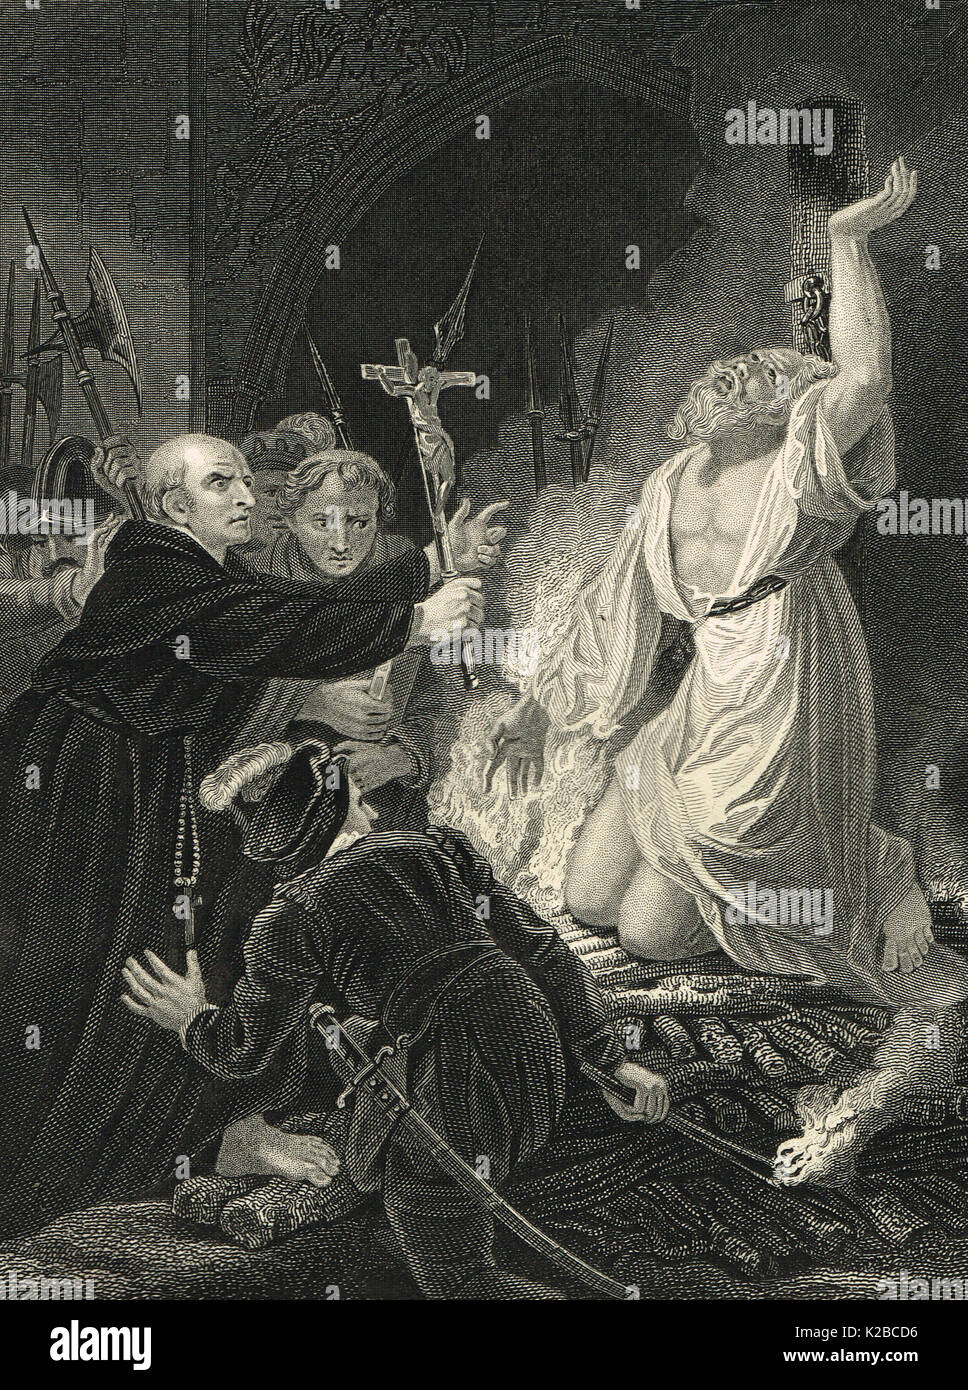 The Martyrdom of Archbishop Cranmer, 21 March 1556 - Stock Image